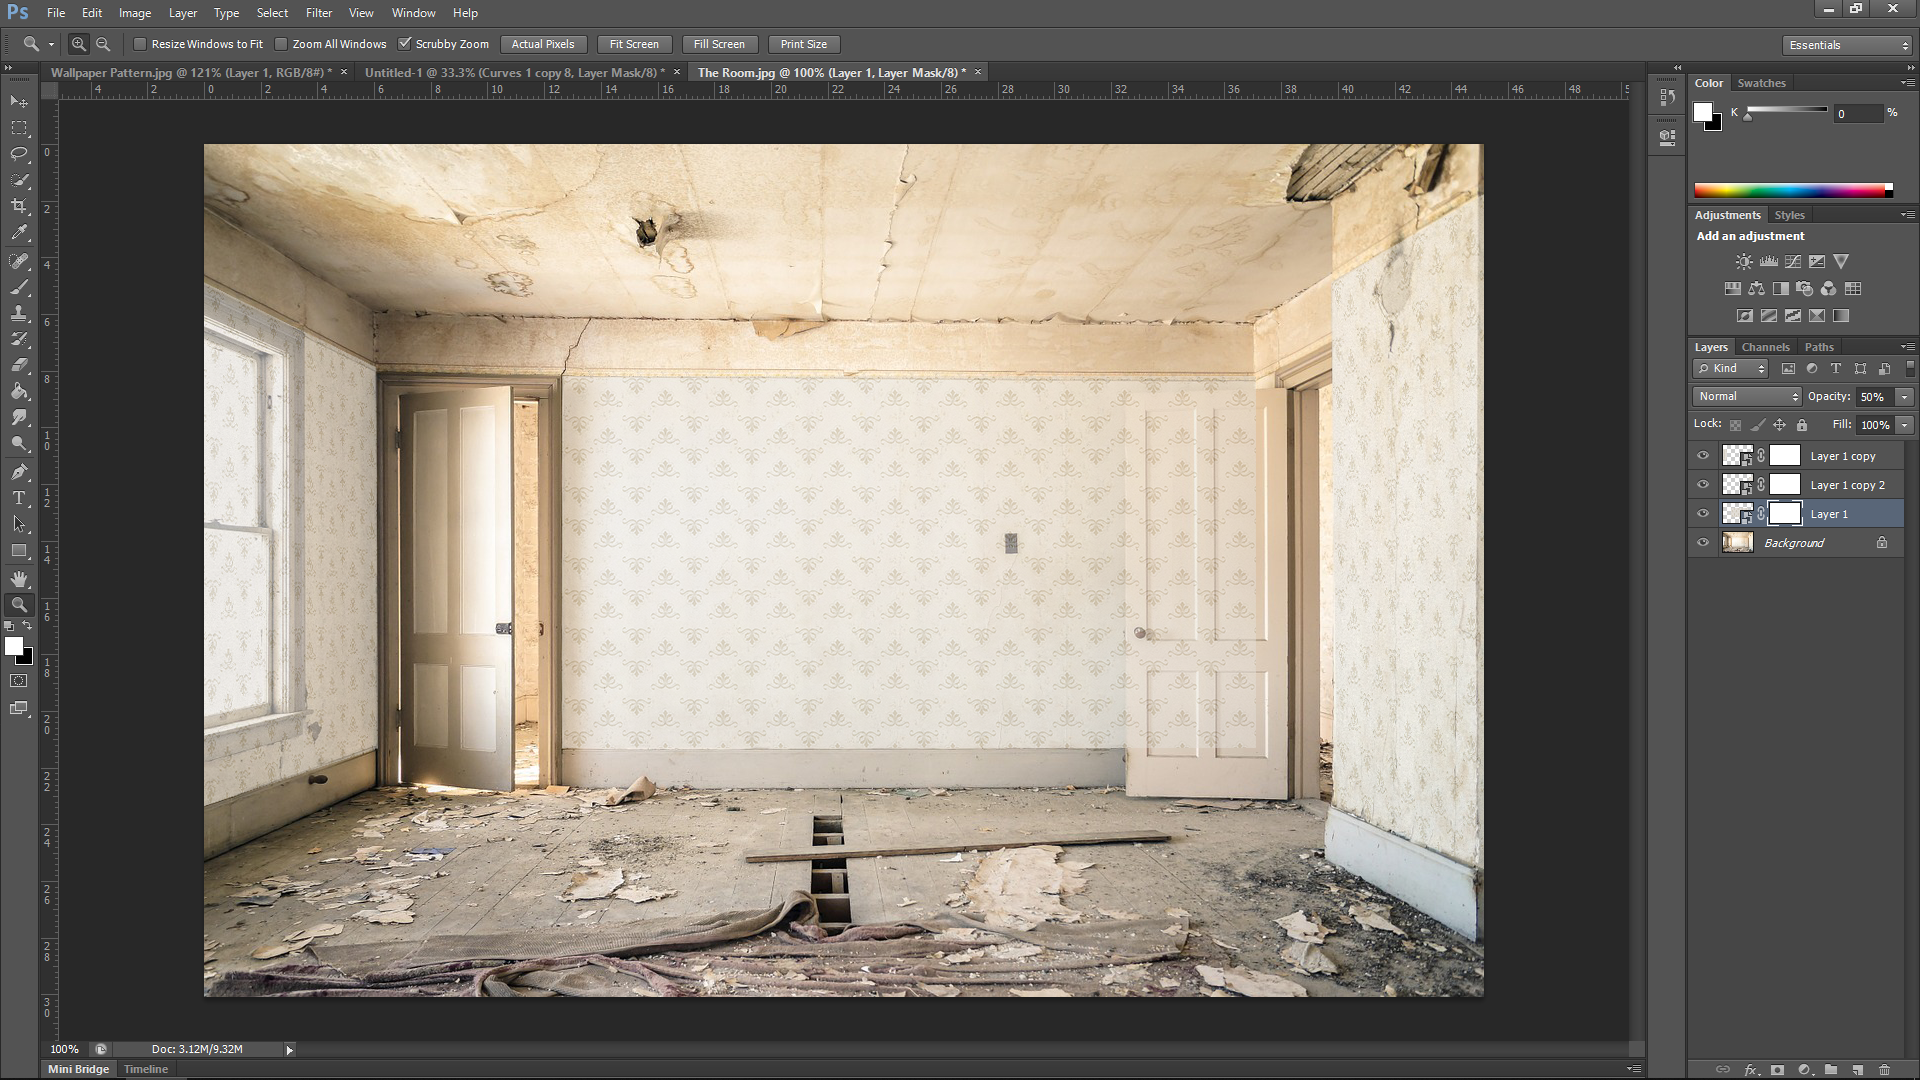 Wallpapering in Photoshop